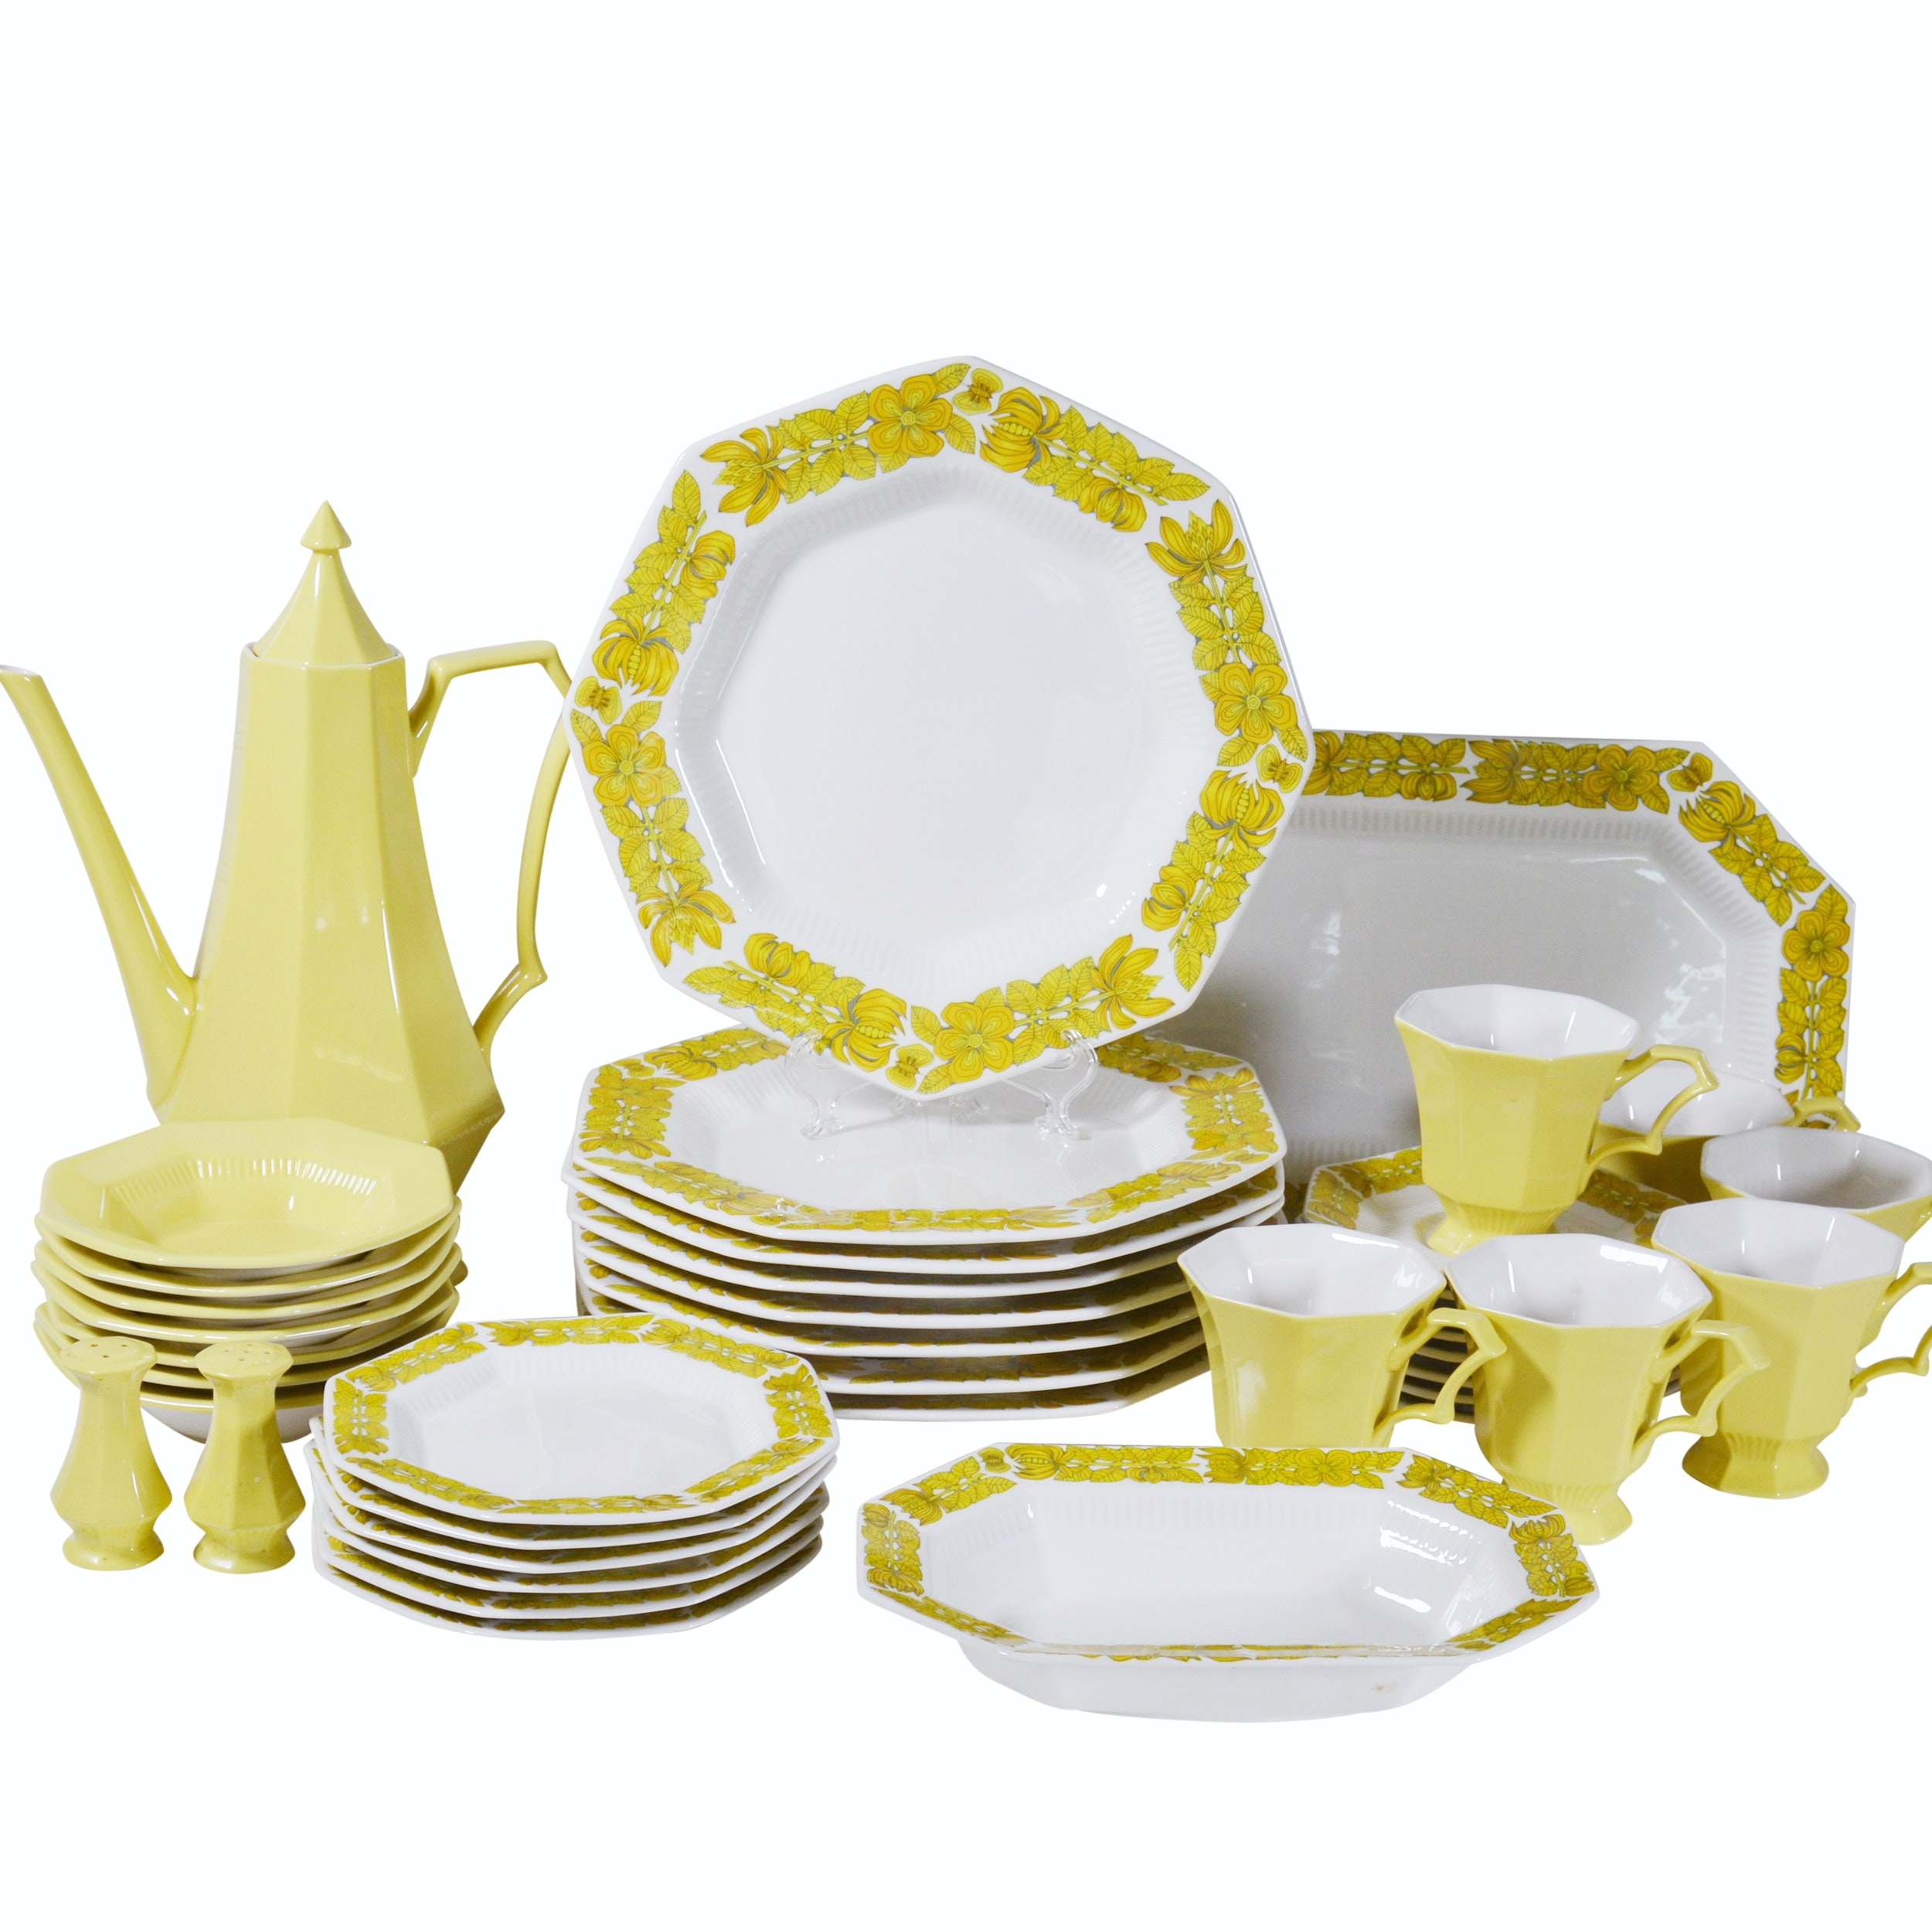 Independence Yellow and Floral Dinnerware and Serveware